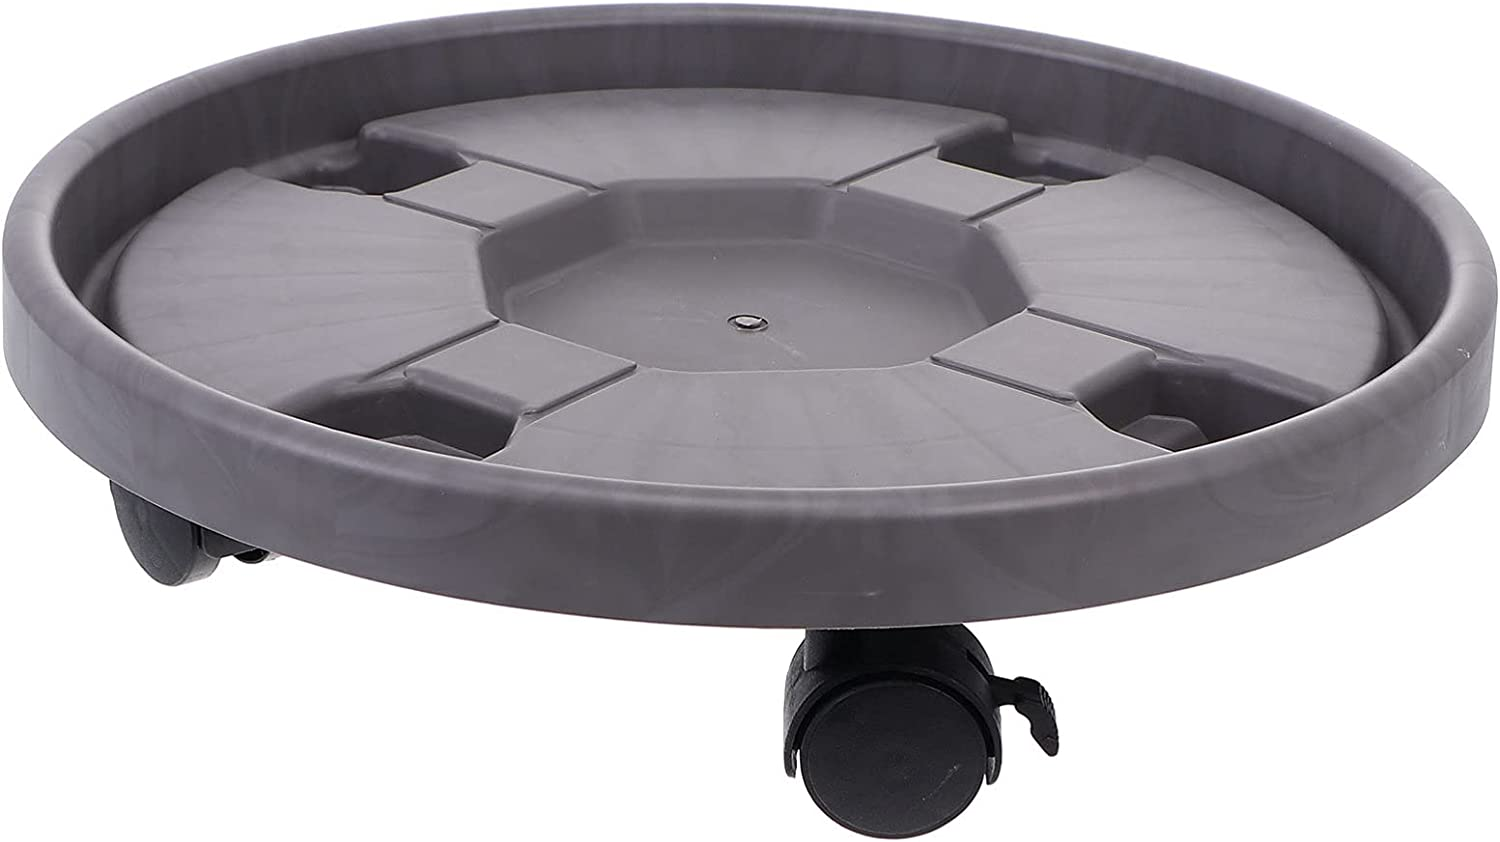 generic Plant Caddy with Moving Movable Round Price reduction Plan Max 77% OFF Wheels Caster